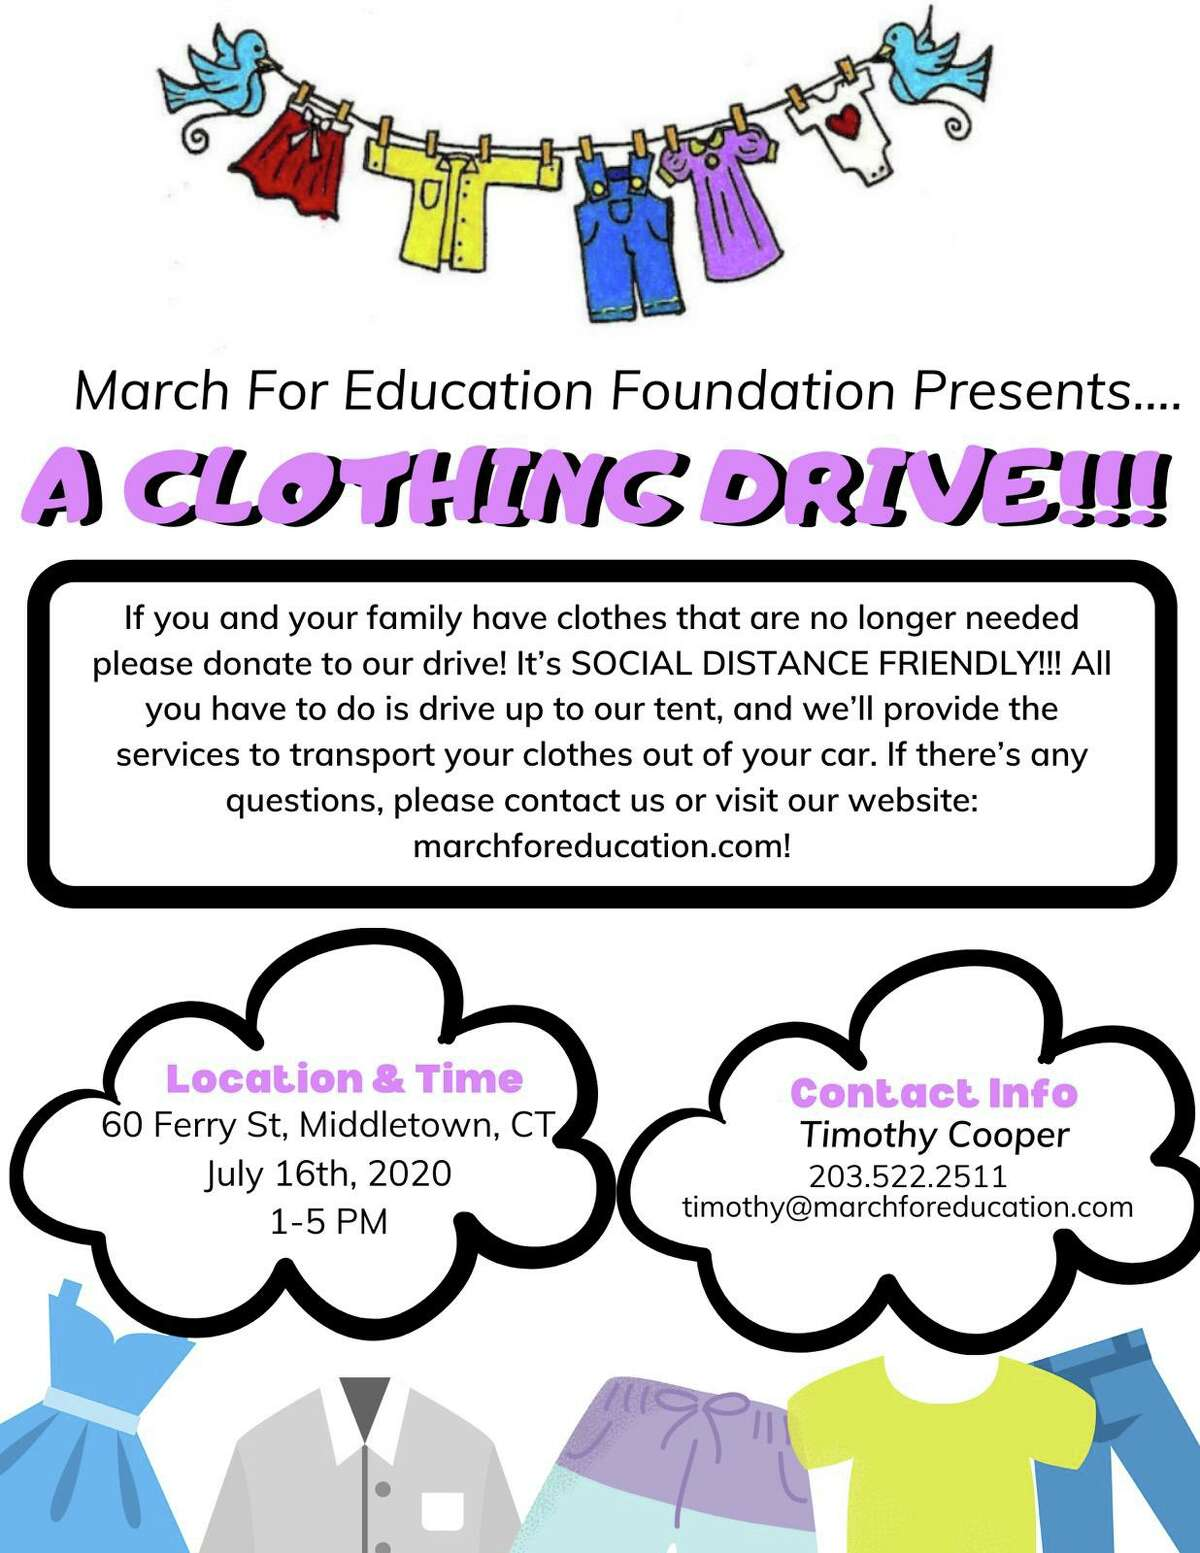 The March for Education Foundation is hosting a socially distanced, drive-up used clothing drive Thursday from 1 to 5 p.m. at the 60 Ferry St., Middletown, parking lot.